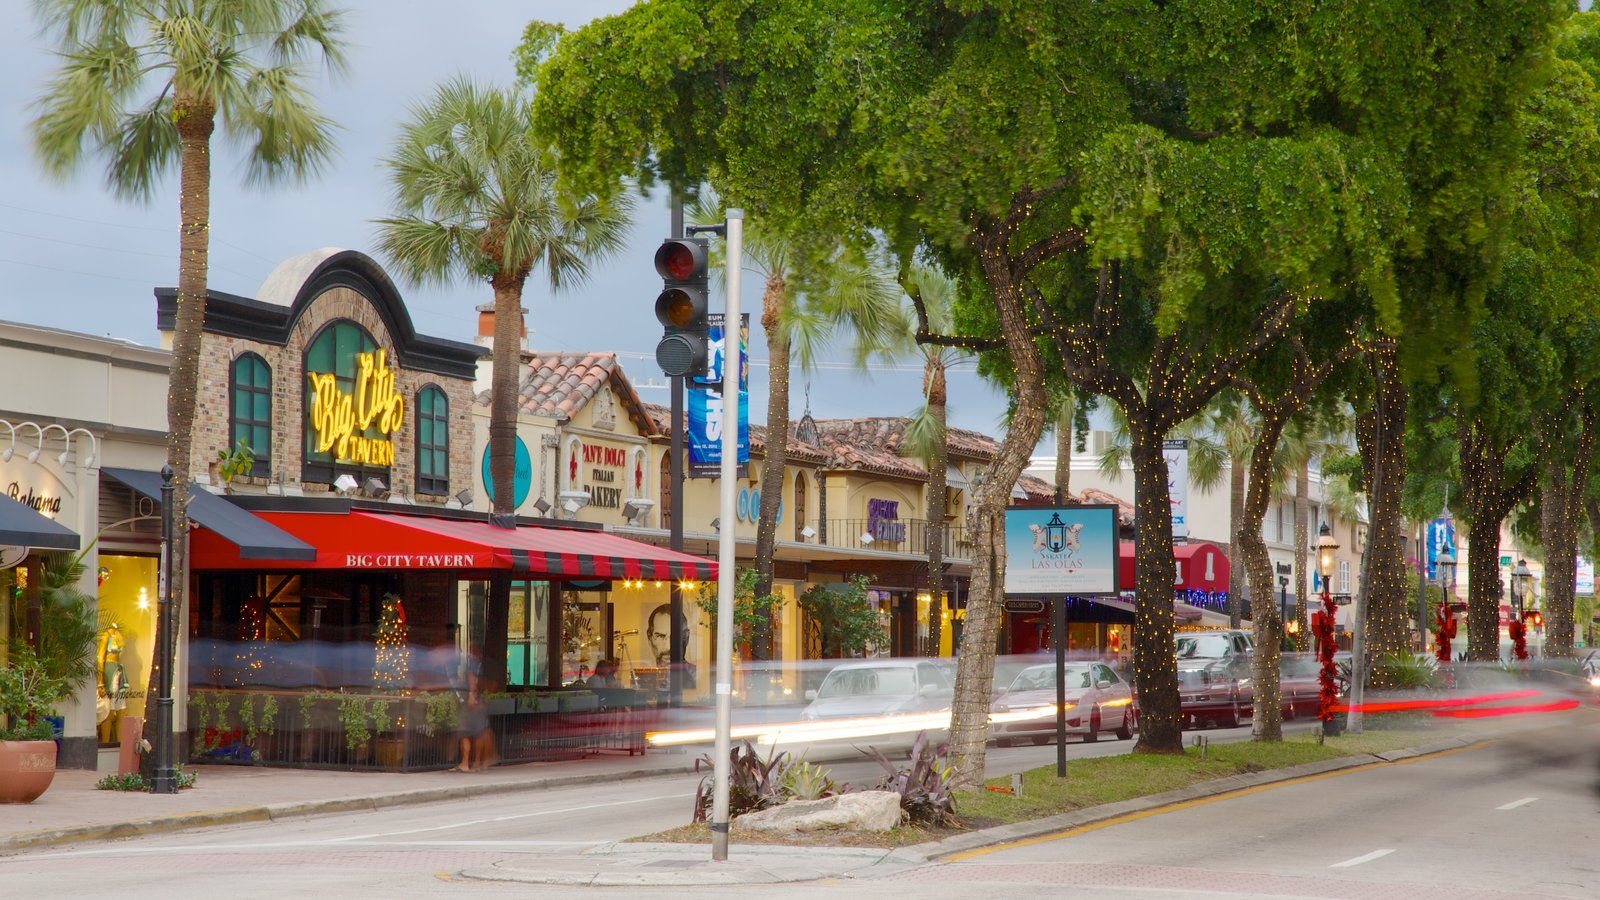 Las Olas Riverfront showing a city and street scenes